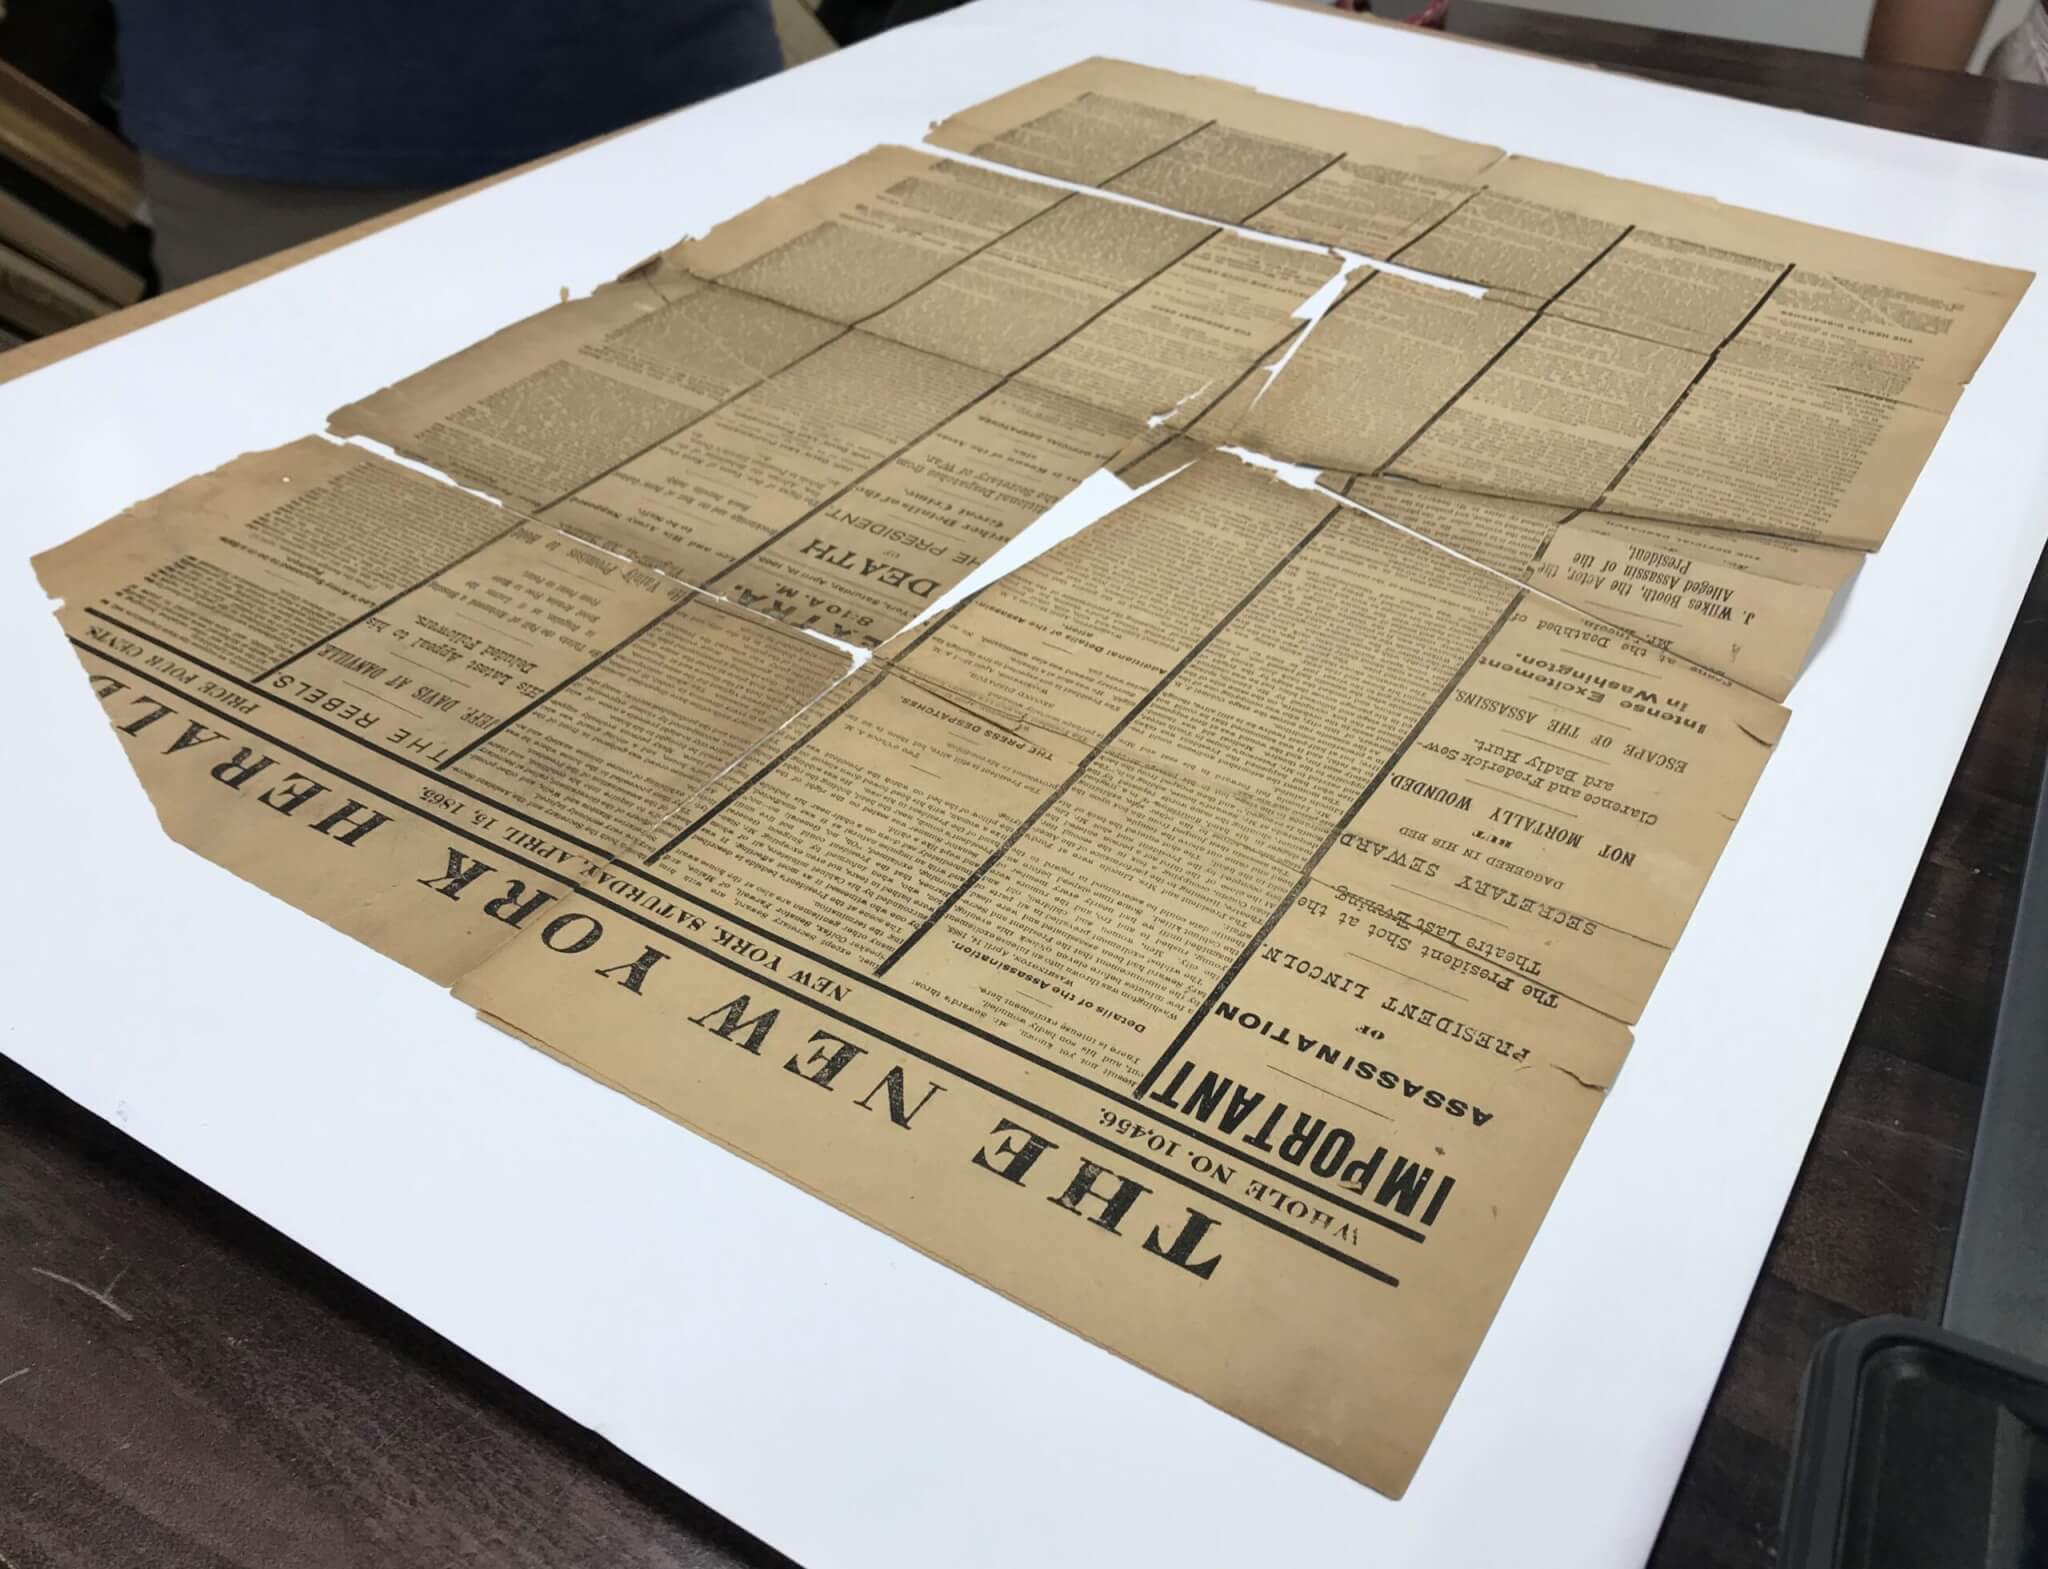 Assassination of Abraham Lincoln Newspaper. Conservation and Restoration of historic newspapers, documents, letters, and books. Artifact Services, Artmill Group, April Hann Lanford